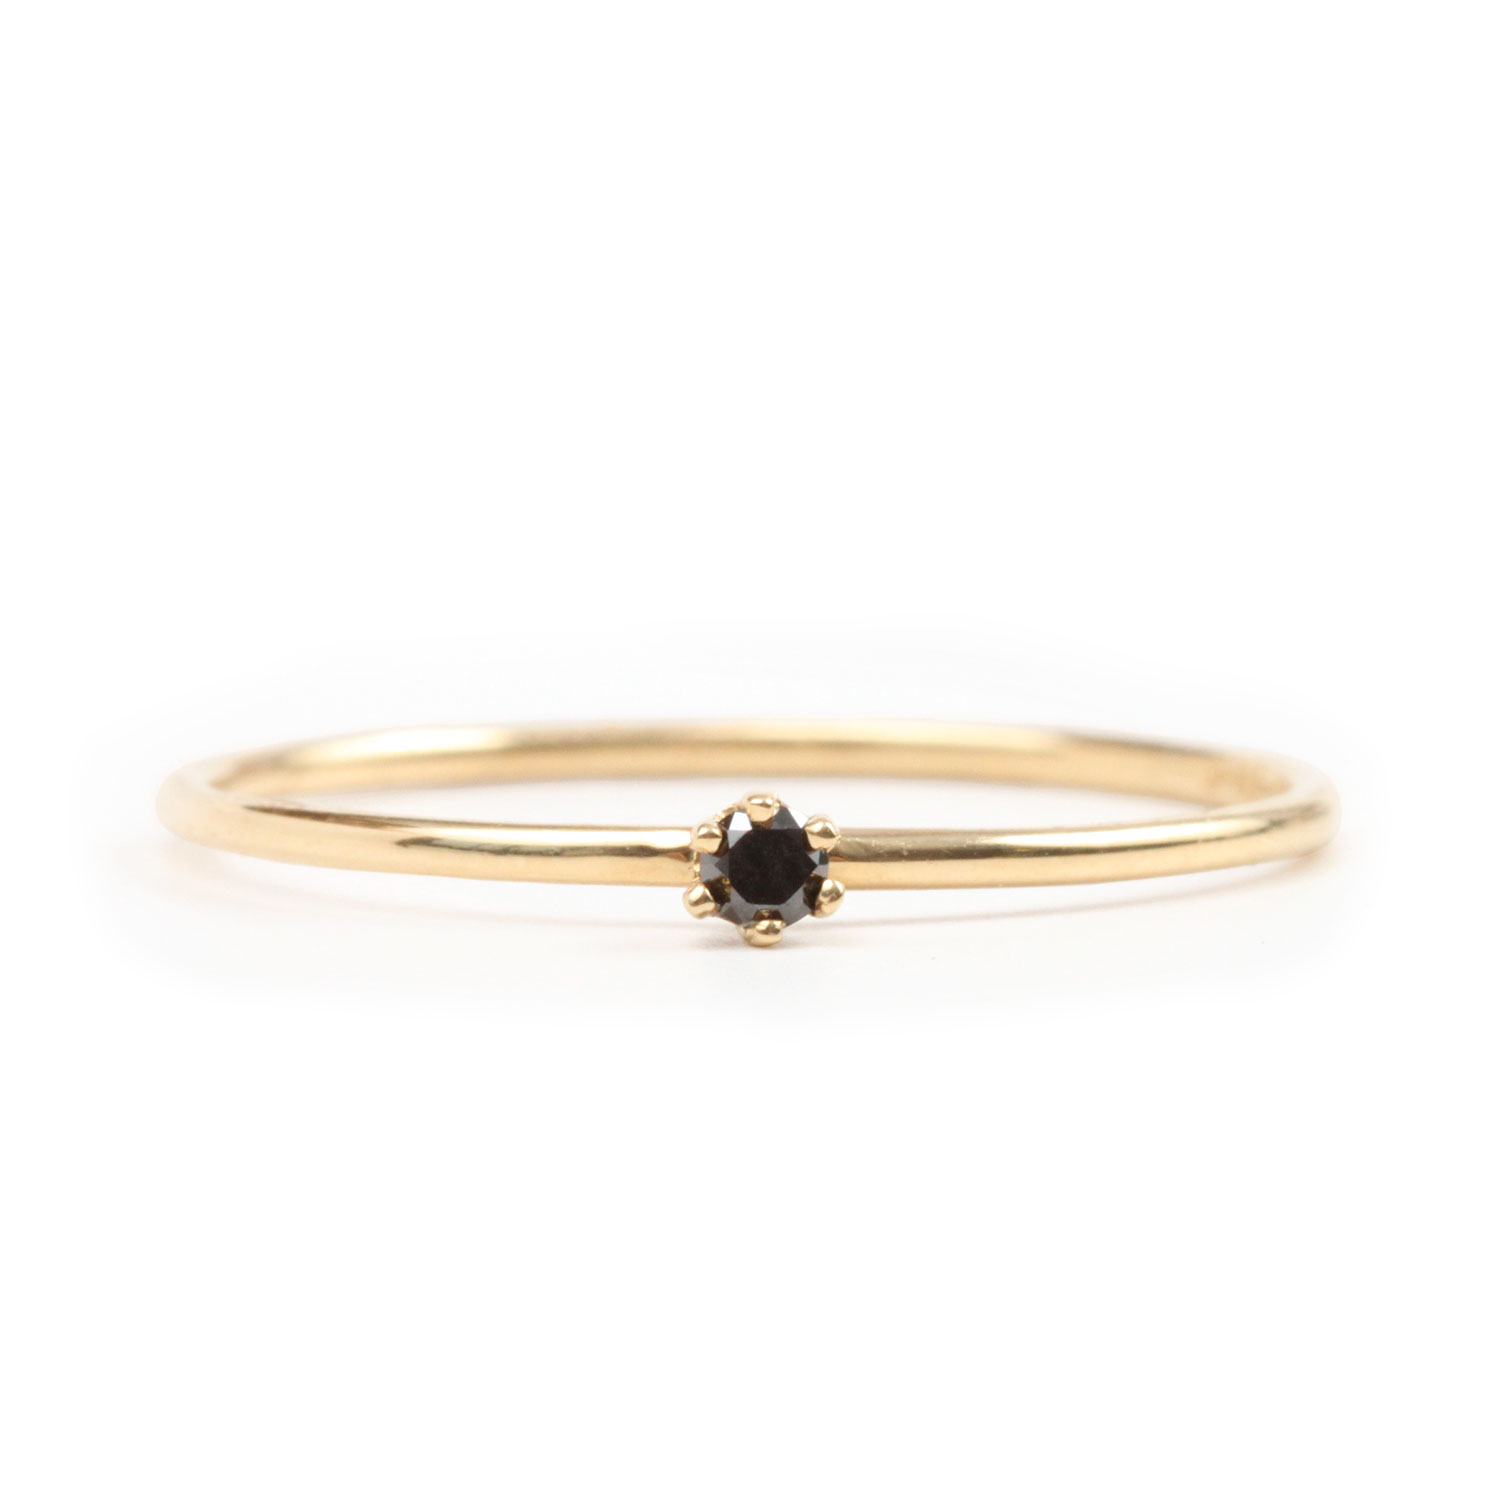 New The Tiniest Ring, Black Diamond - Catbird DA31